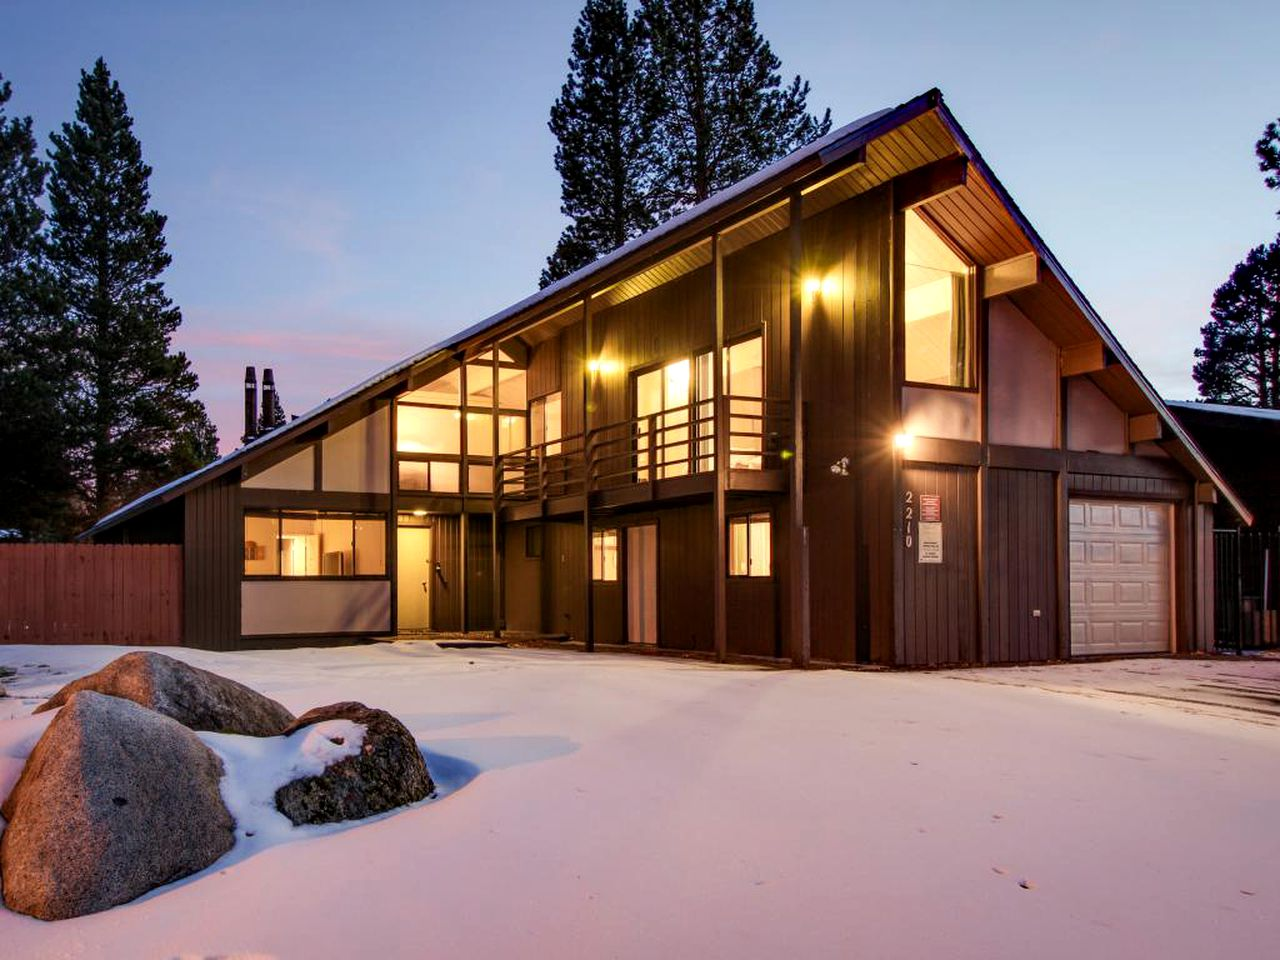 Driveway and entry to large, modern cabin on the water in South Lake Tahoe, California